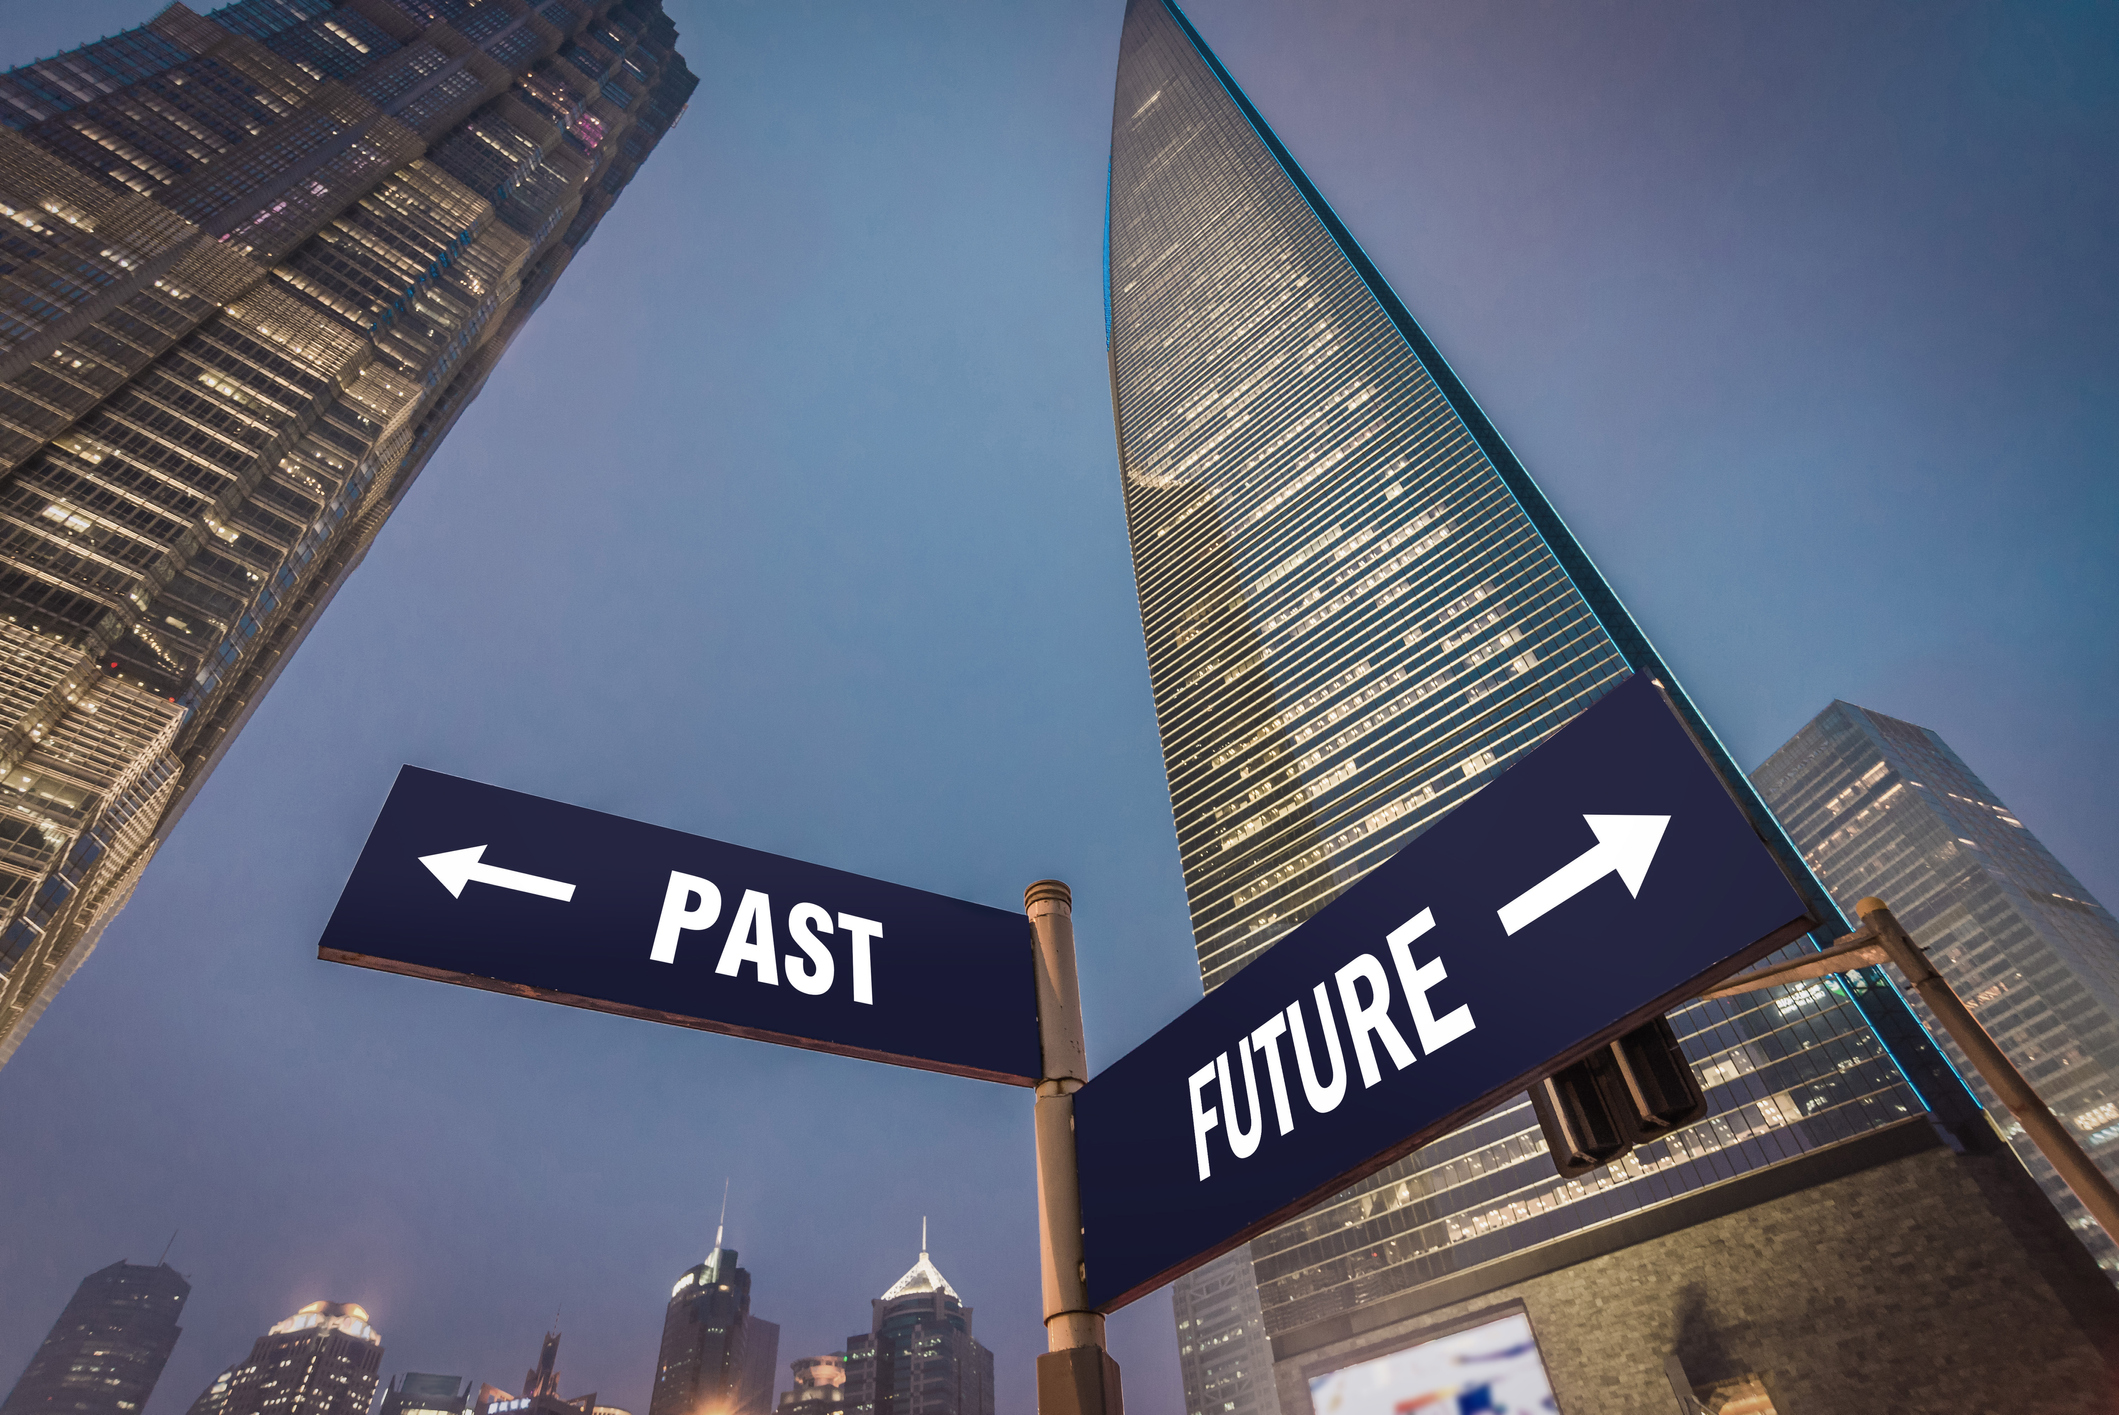 Future and Past Street Road Guide in Shanghai Lujiazui Financial District